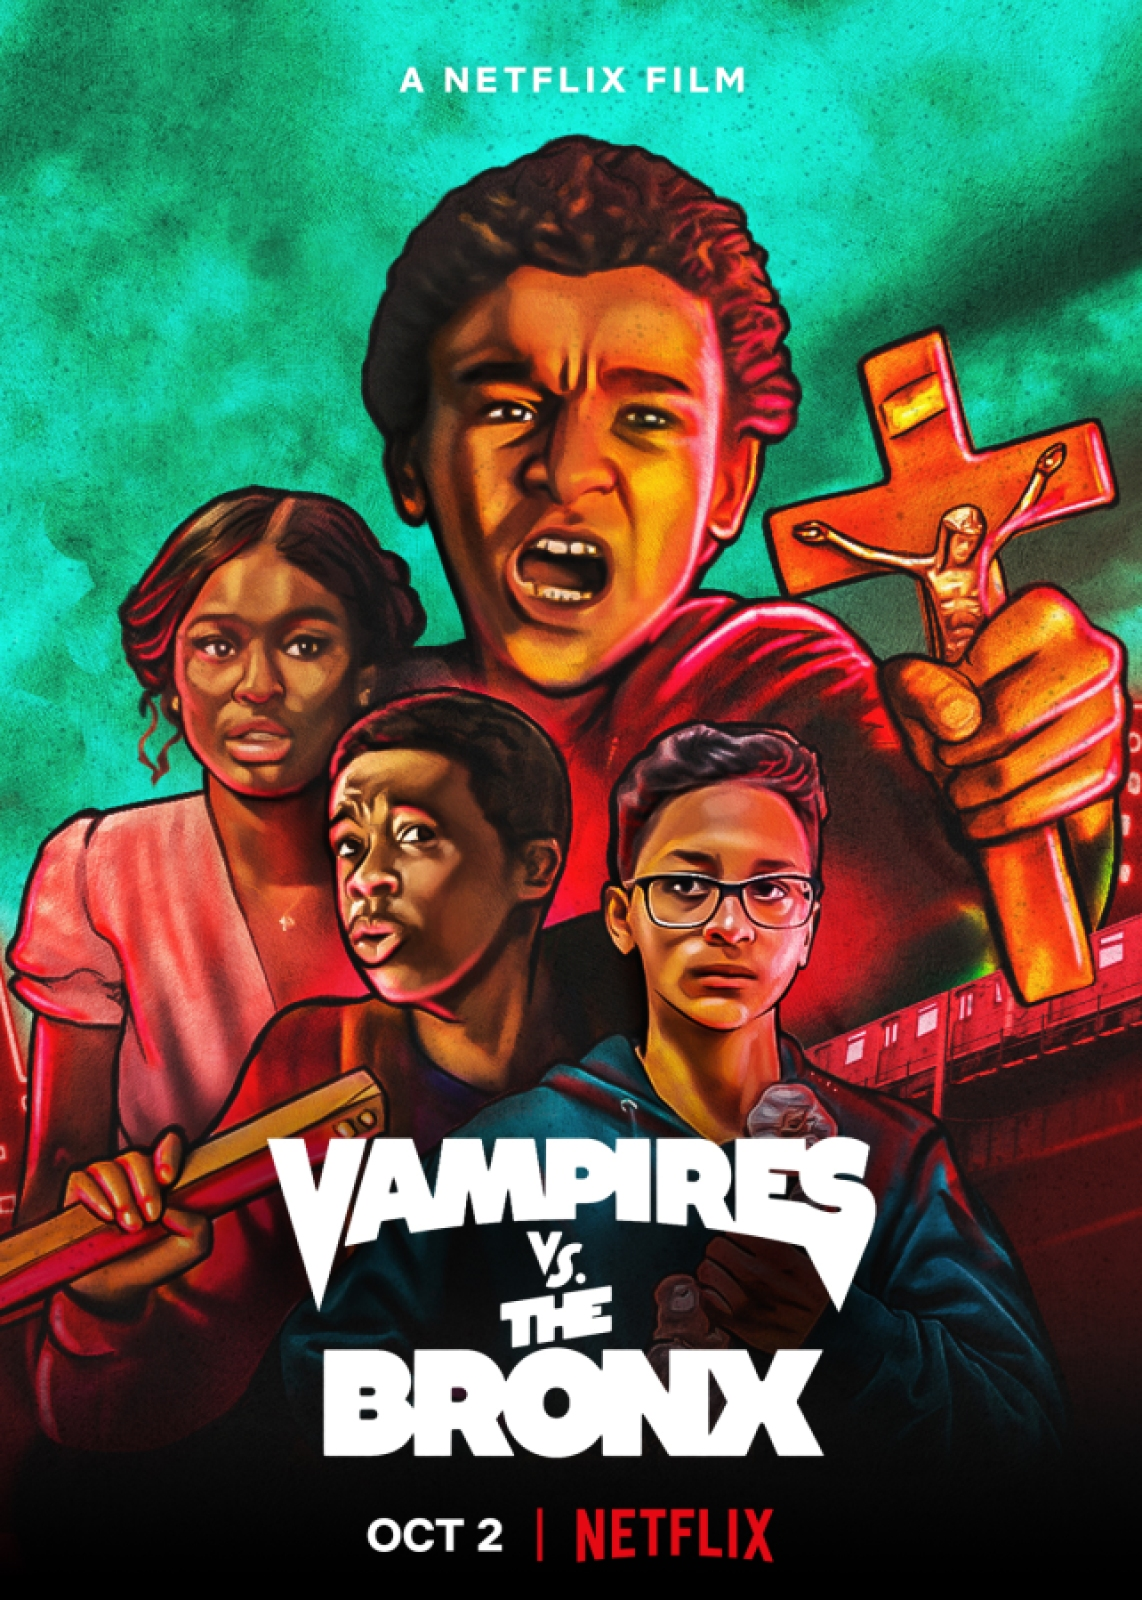 The poster of Vampires vs. The Bronx on Netflix, in which four Black and Latinx Teens are hand drawn holding roses and stakes while they fight vampires.